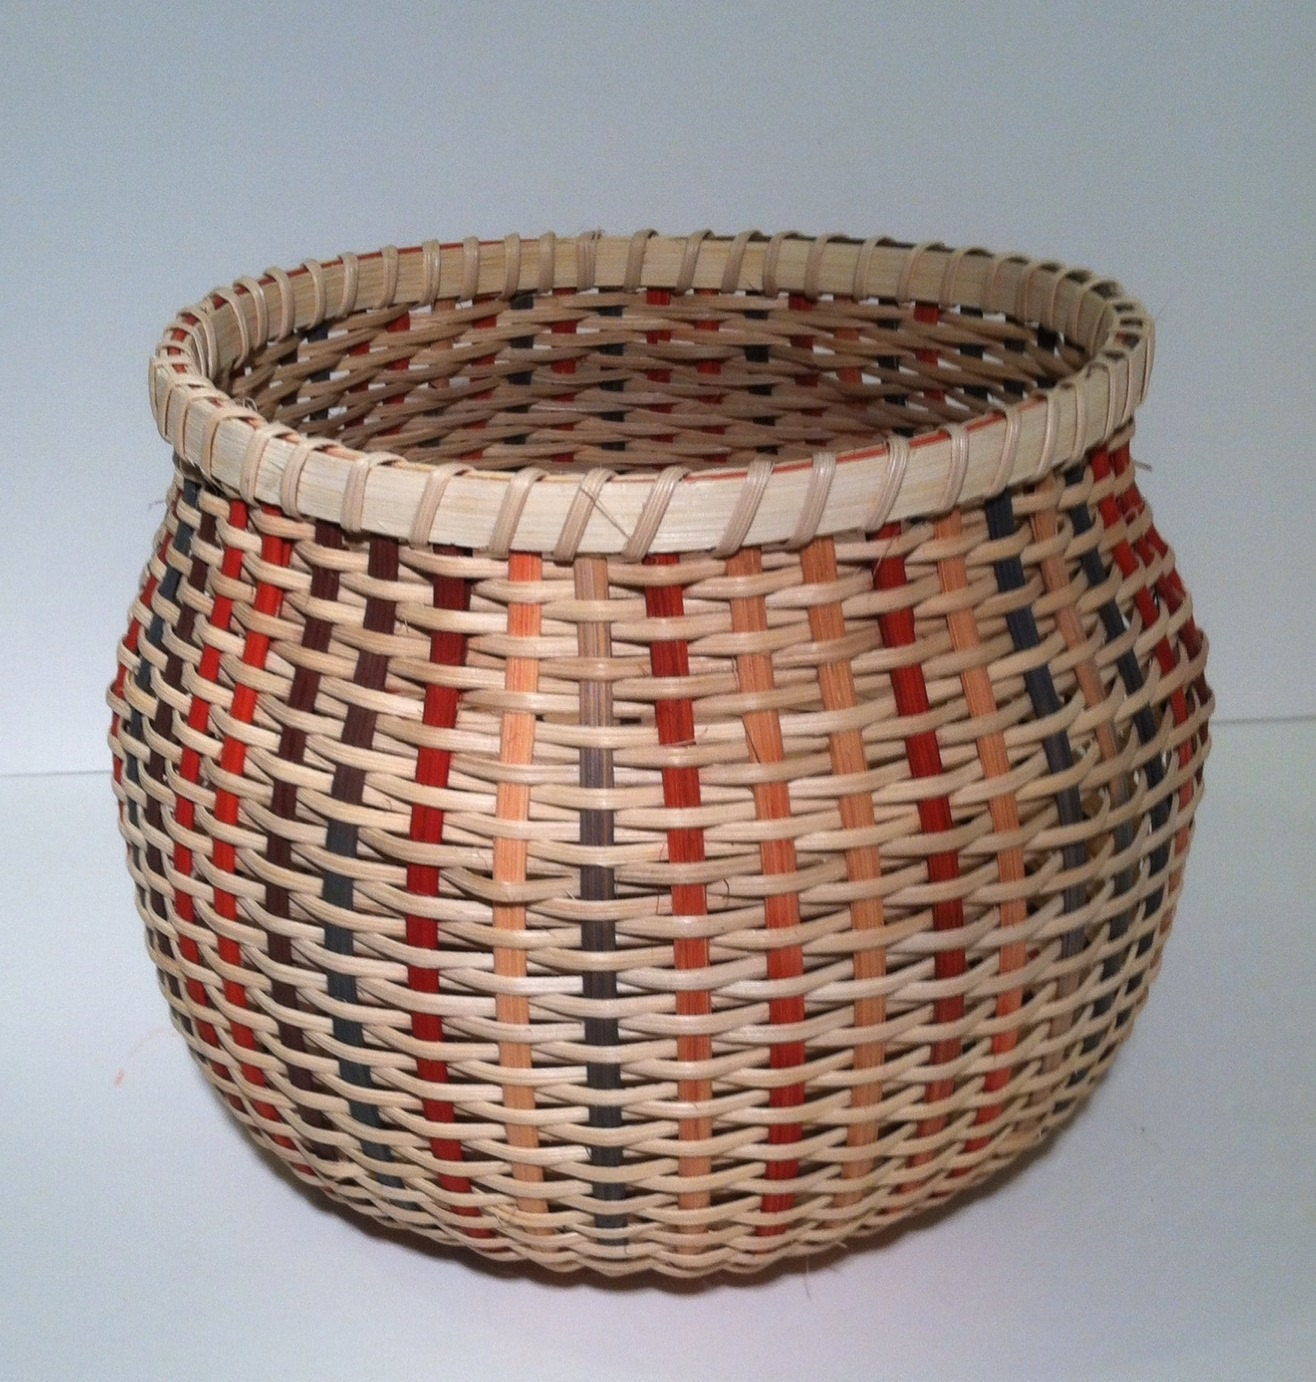 How To Weave A Basket Out Of Reeds : Woven twill basket in earth tones and natural reed